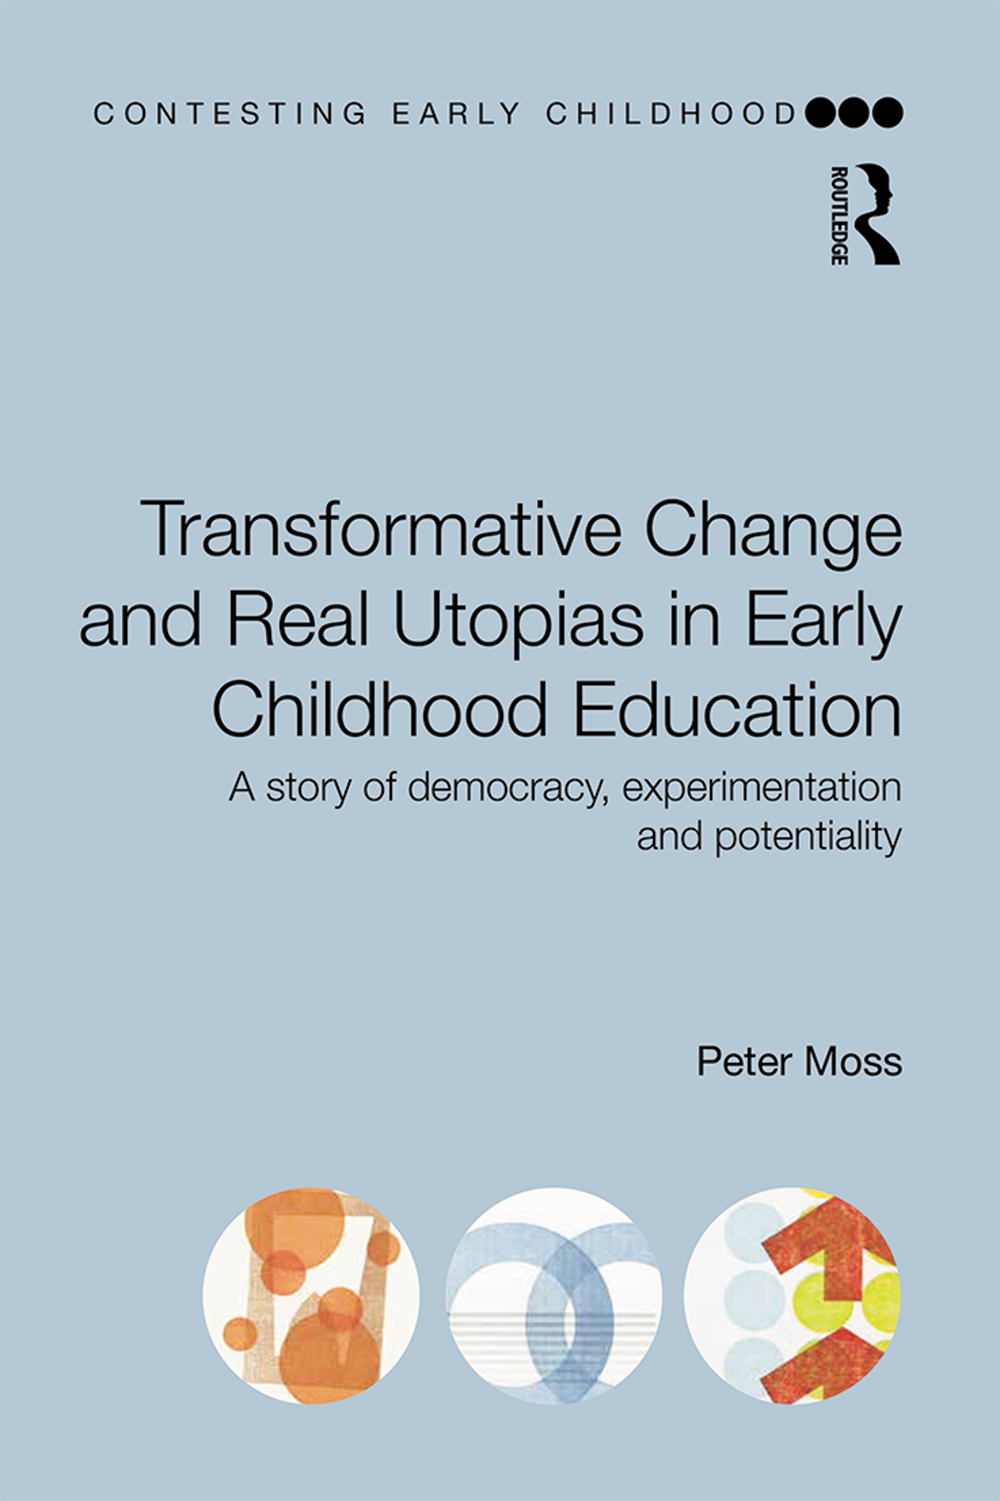 Book cover of Transformative Change and Real Utopias in Early Childhood Education